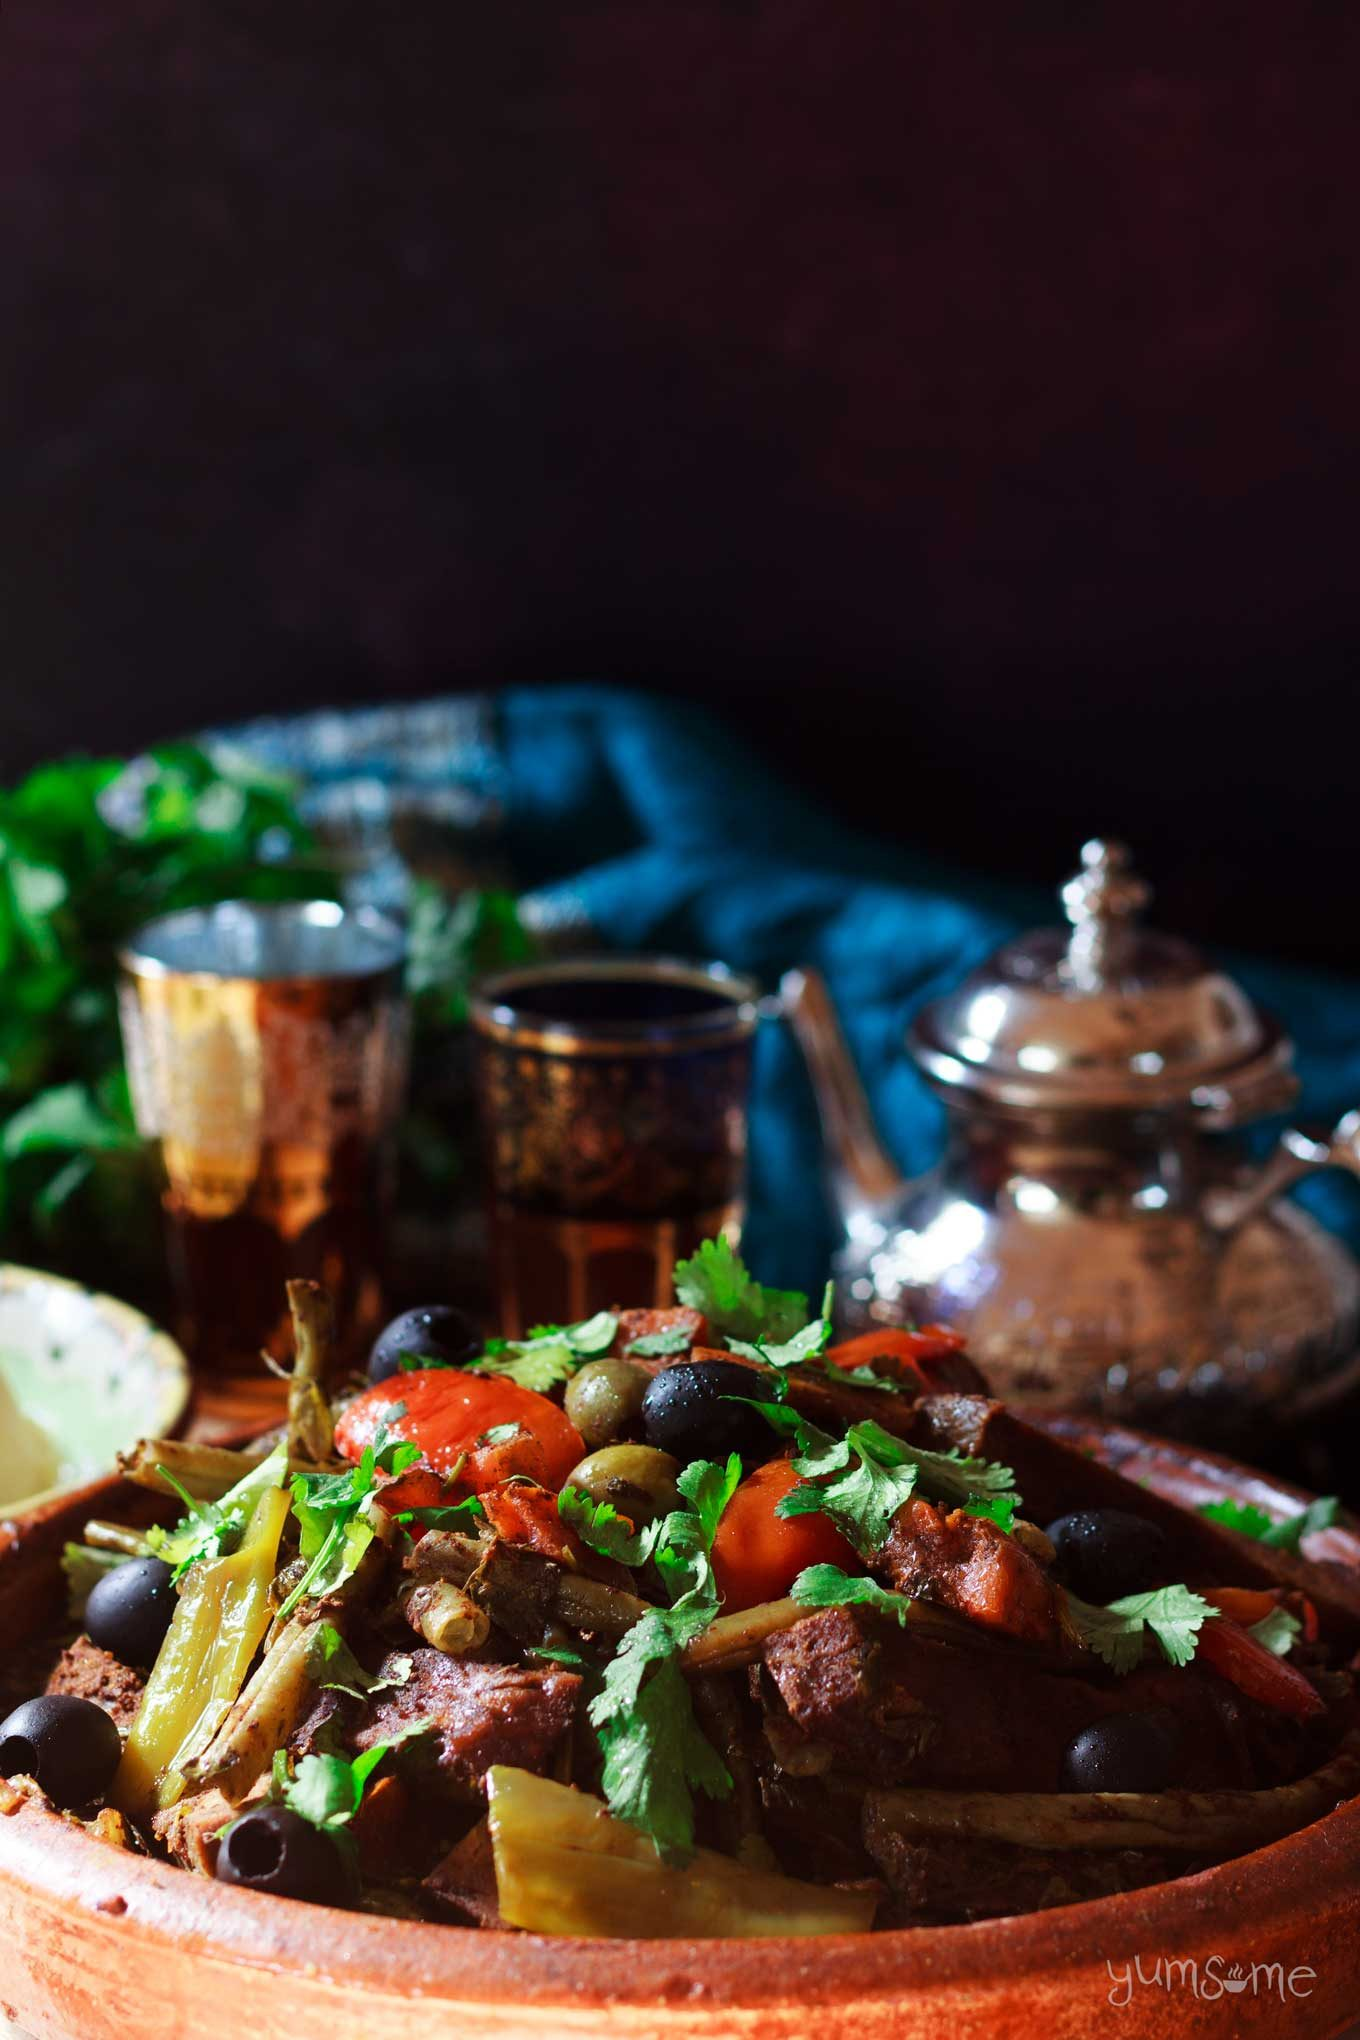 Moroccan vegetable tagine with a pot of tea and two glasses.